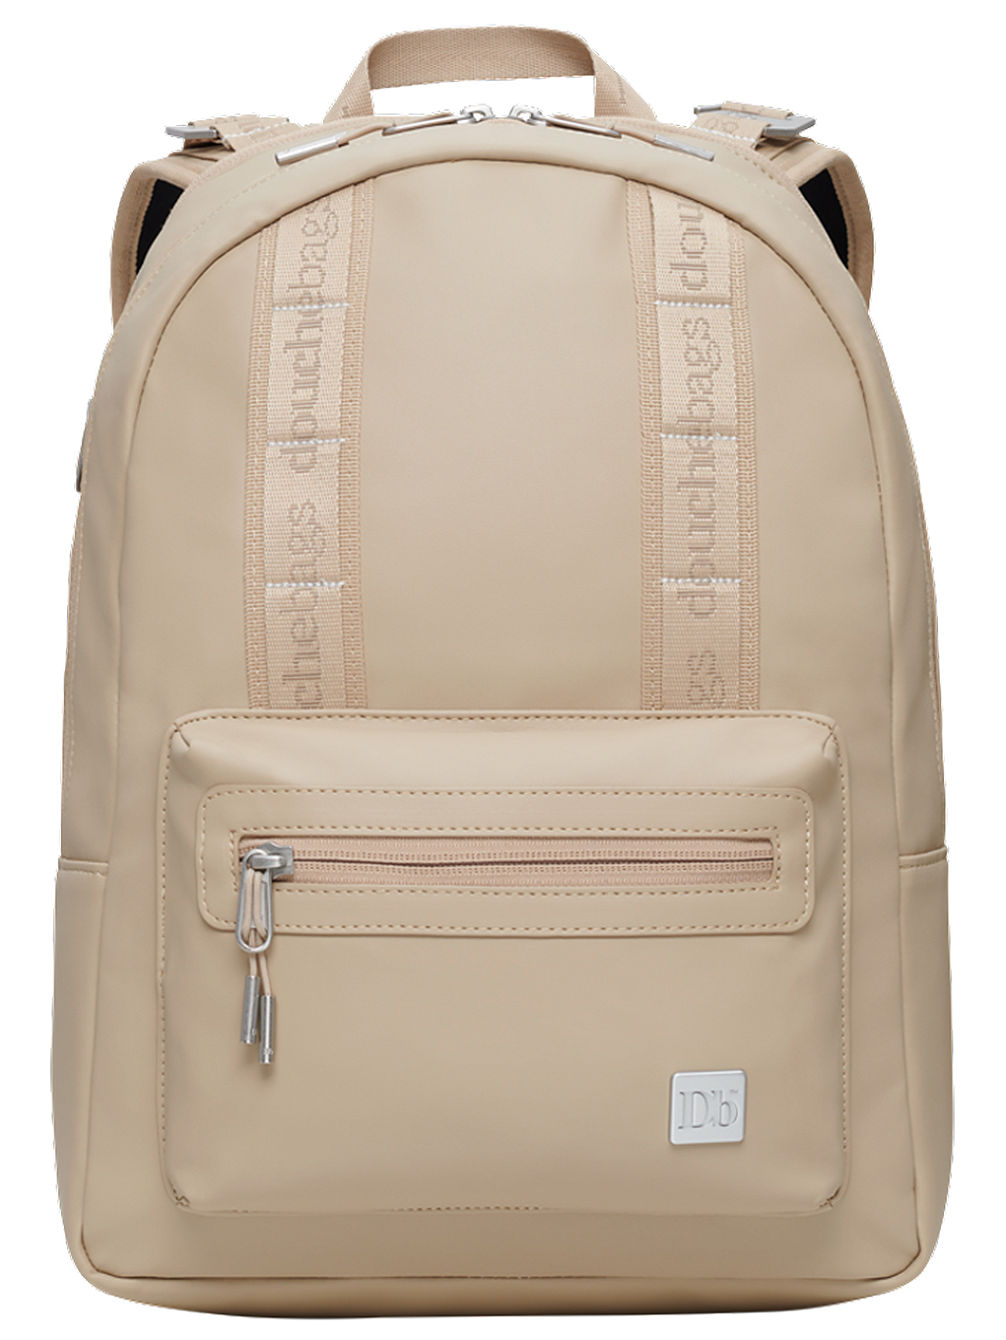 The Avenue Rucksack